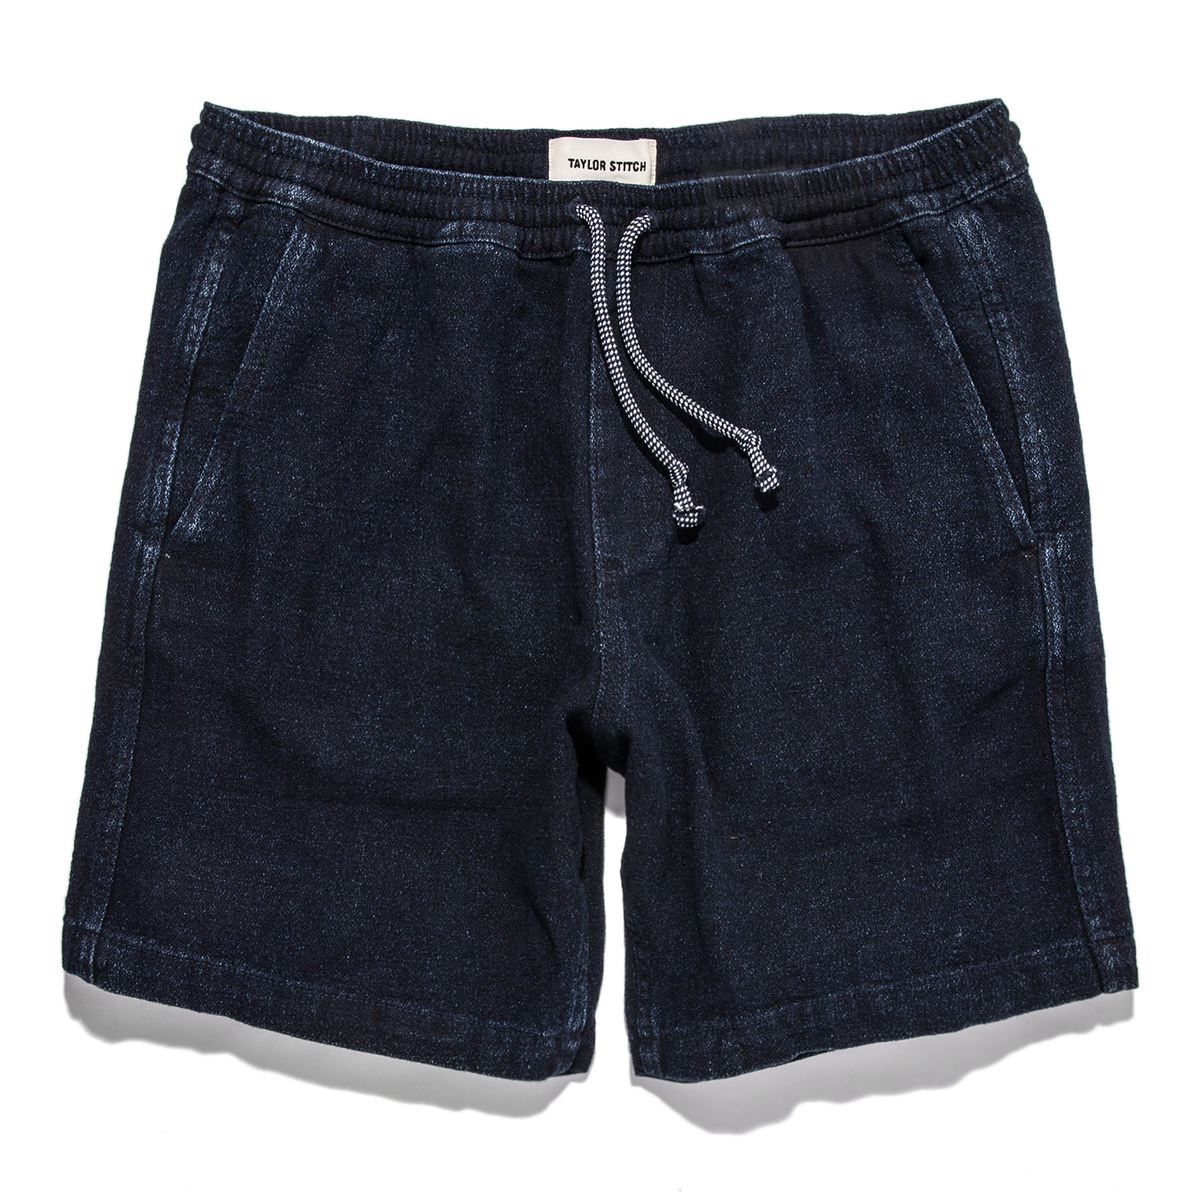 The Après Short in Indigo Crepe Featured Image Short